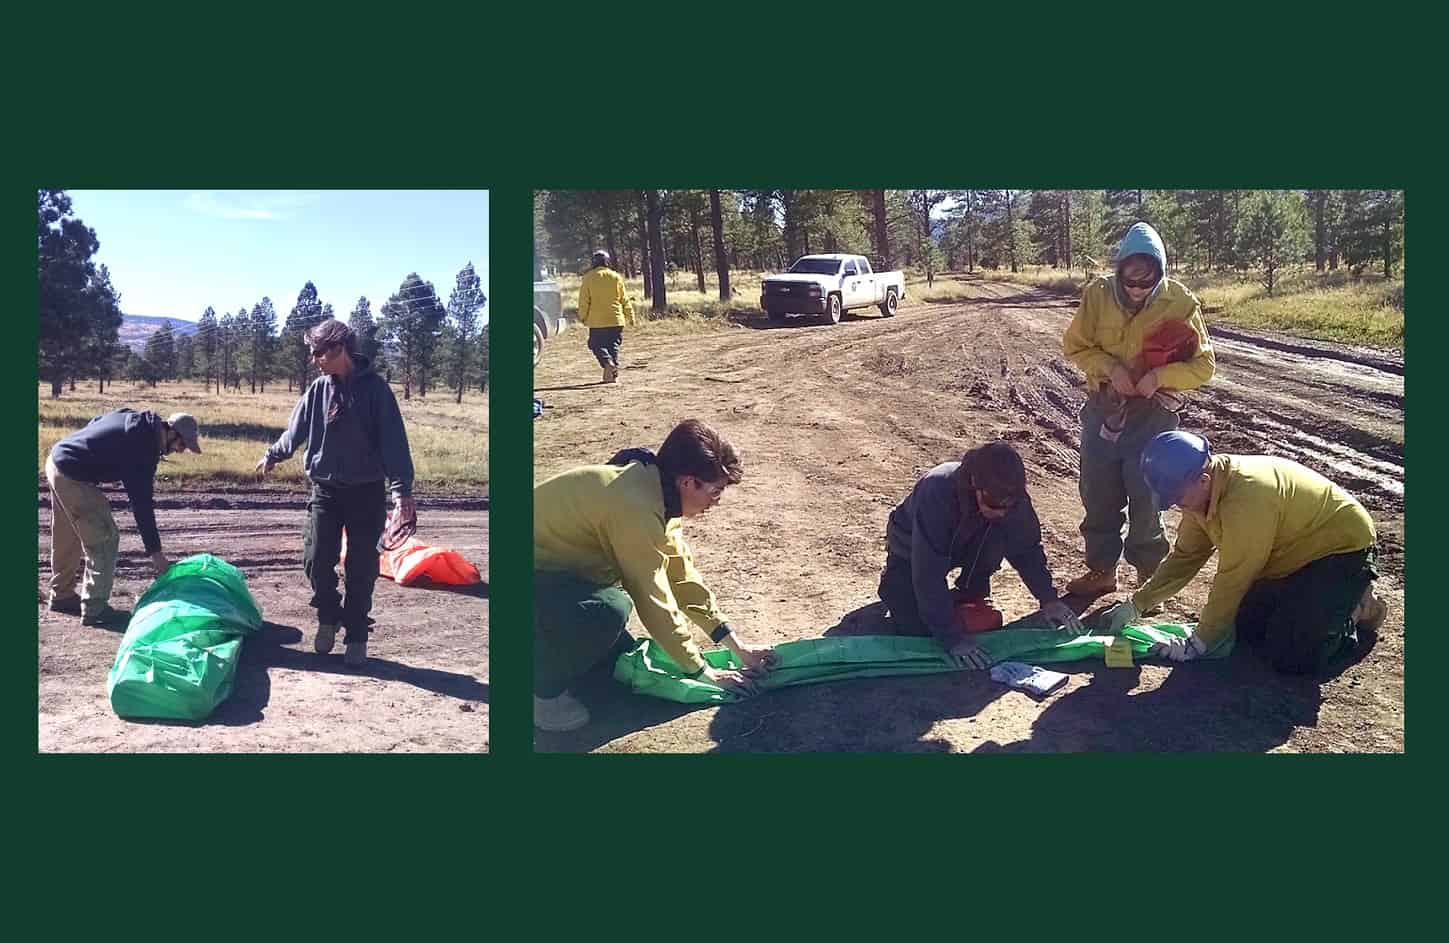 Two photos of Wildfire Network's Krys Nystrom training youth in the lost art of refolding a practice shelter. Credit: Krista Bonfantine, Arid Land Innovation